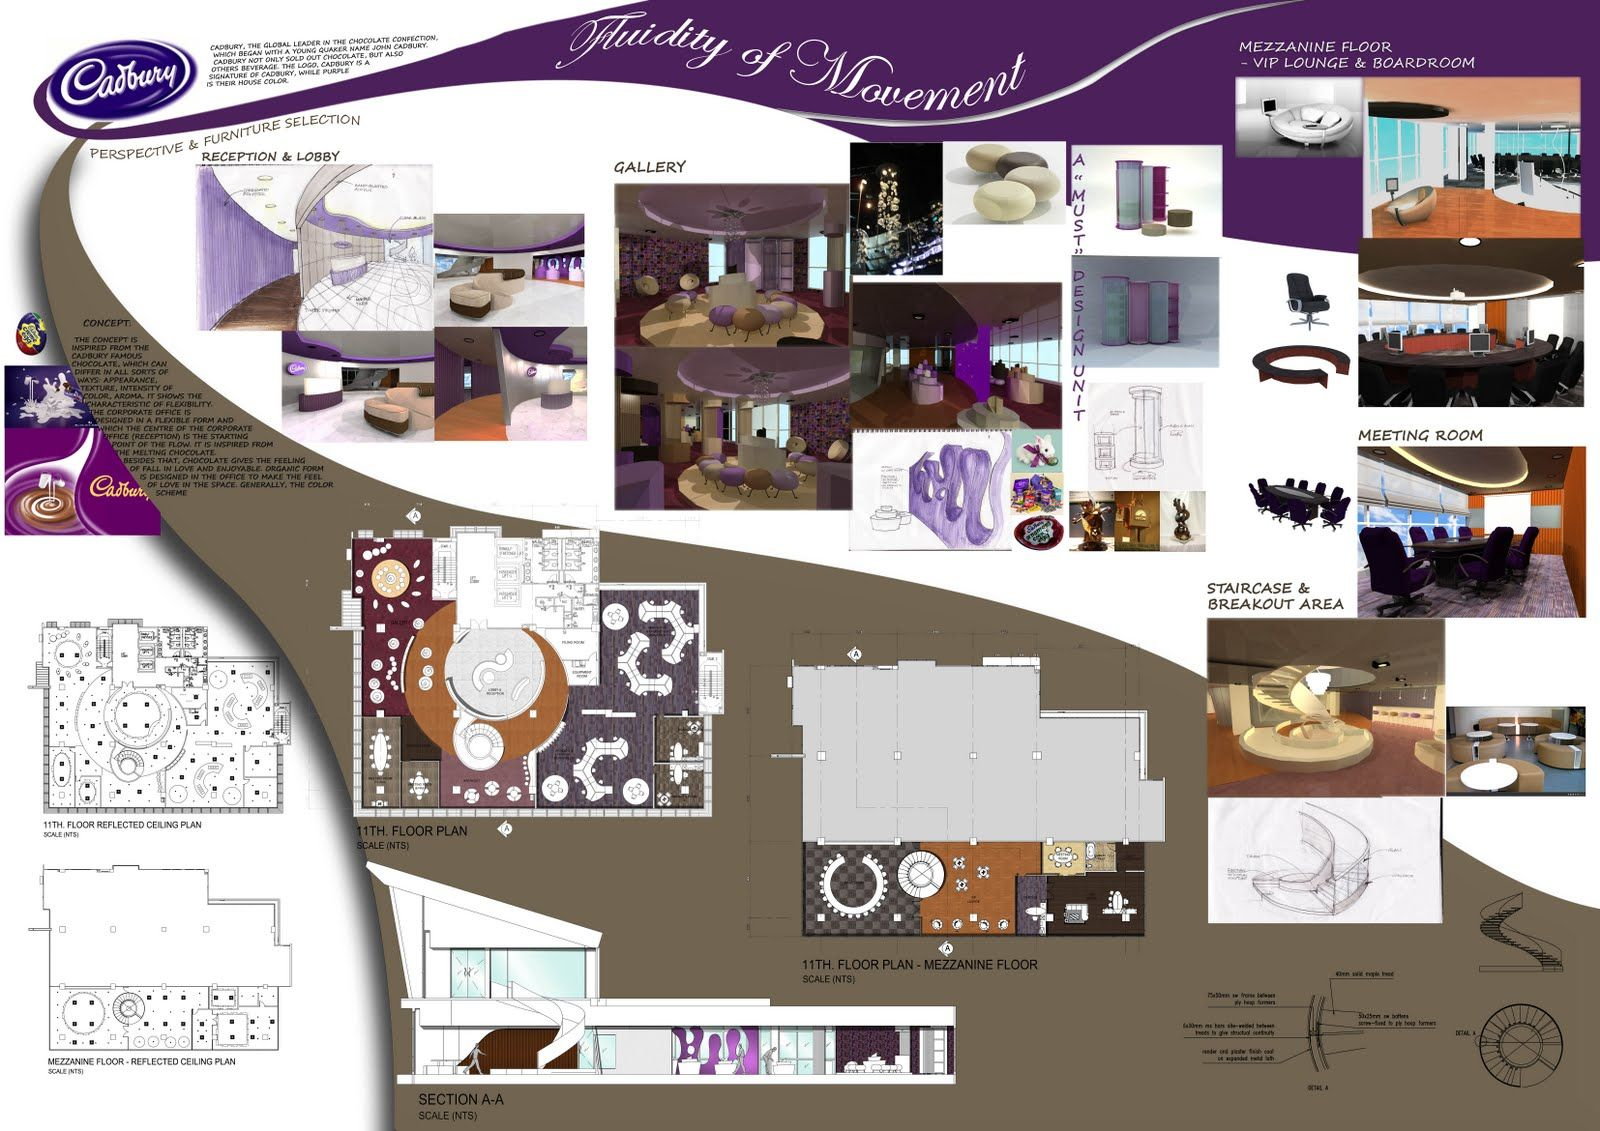 Corporate office cadbury boards presentations - Interior design presentation layout ...